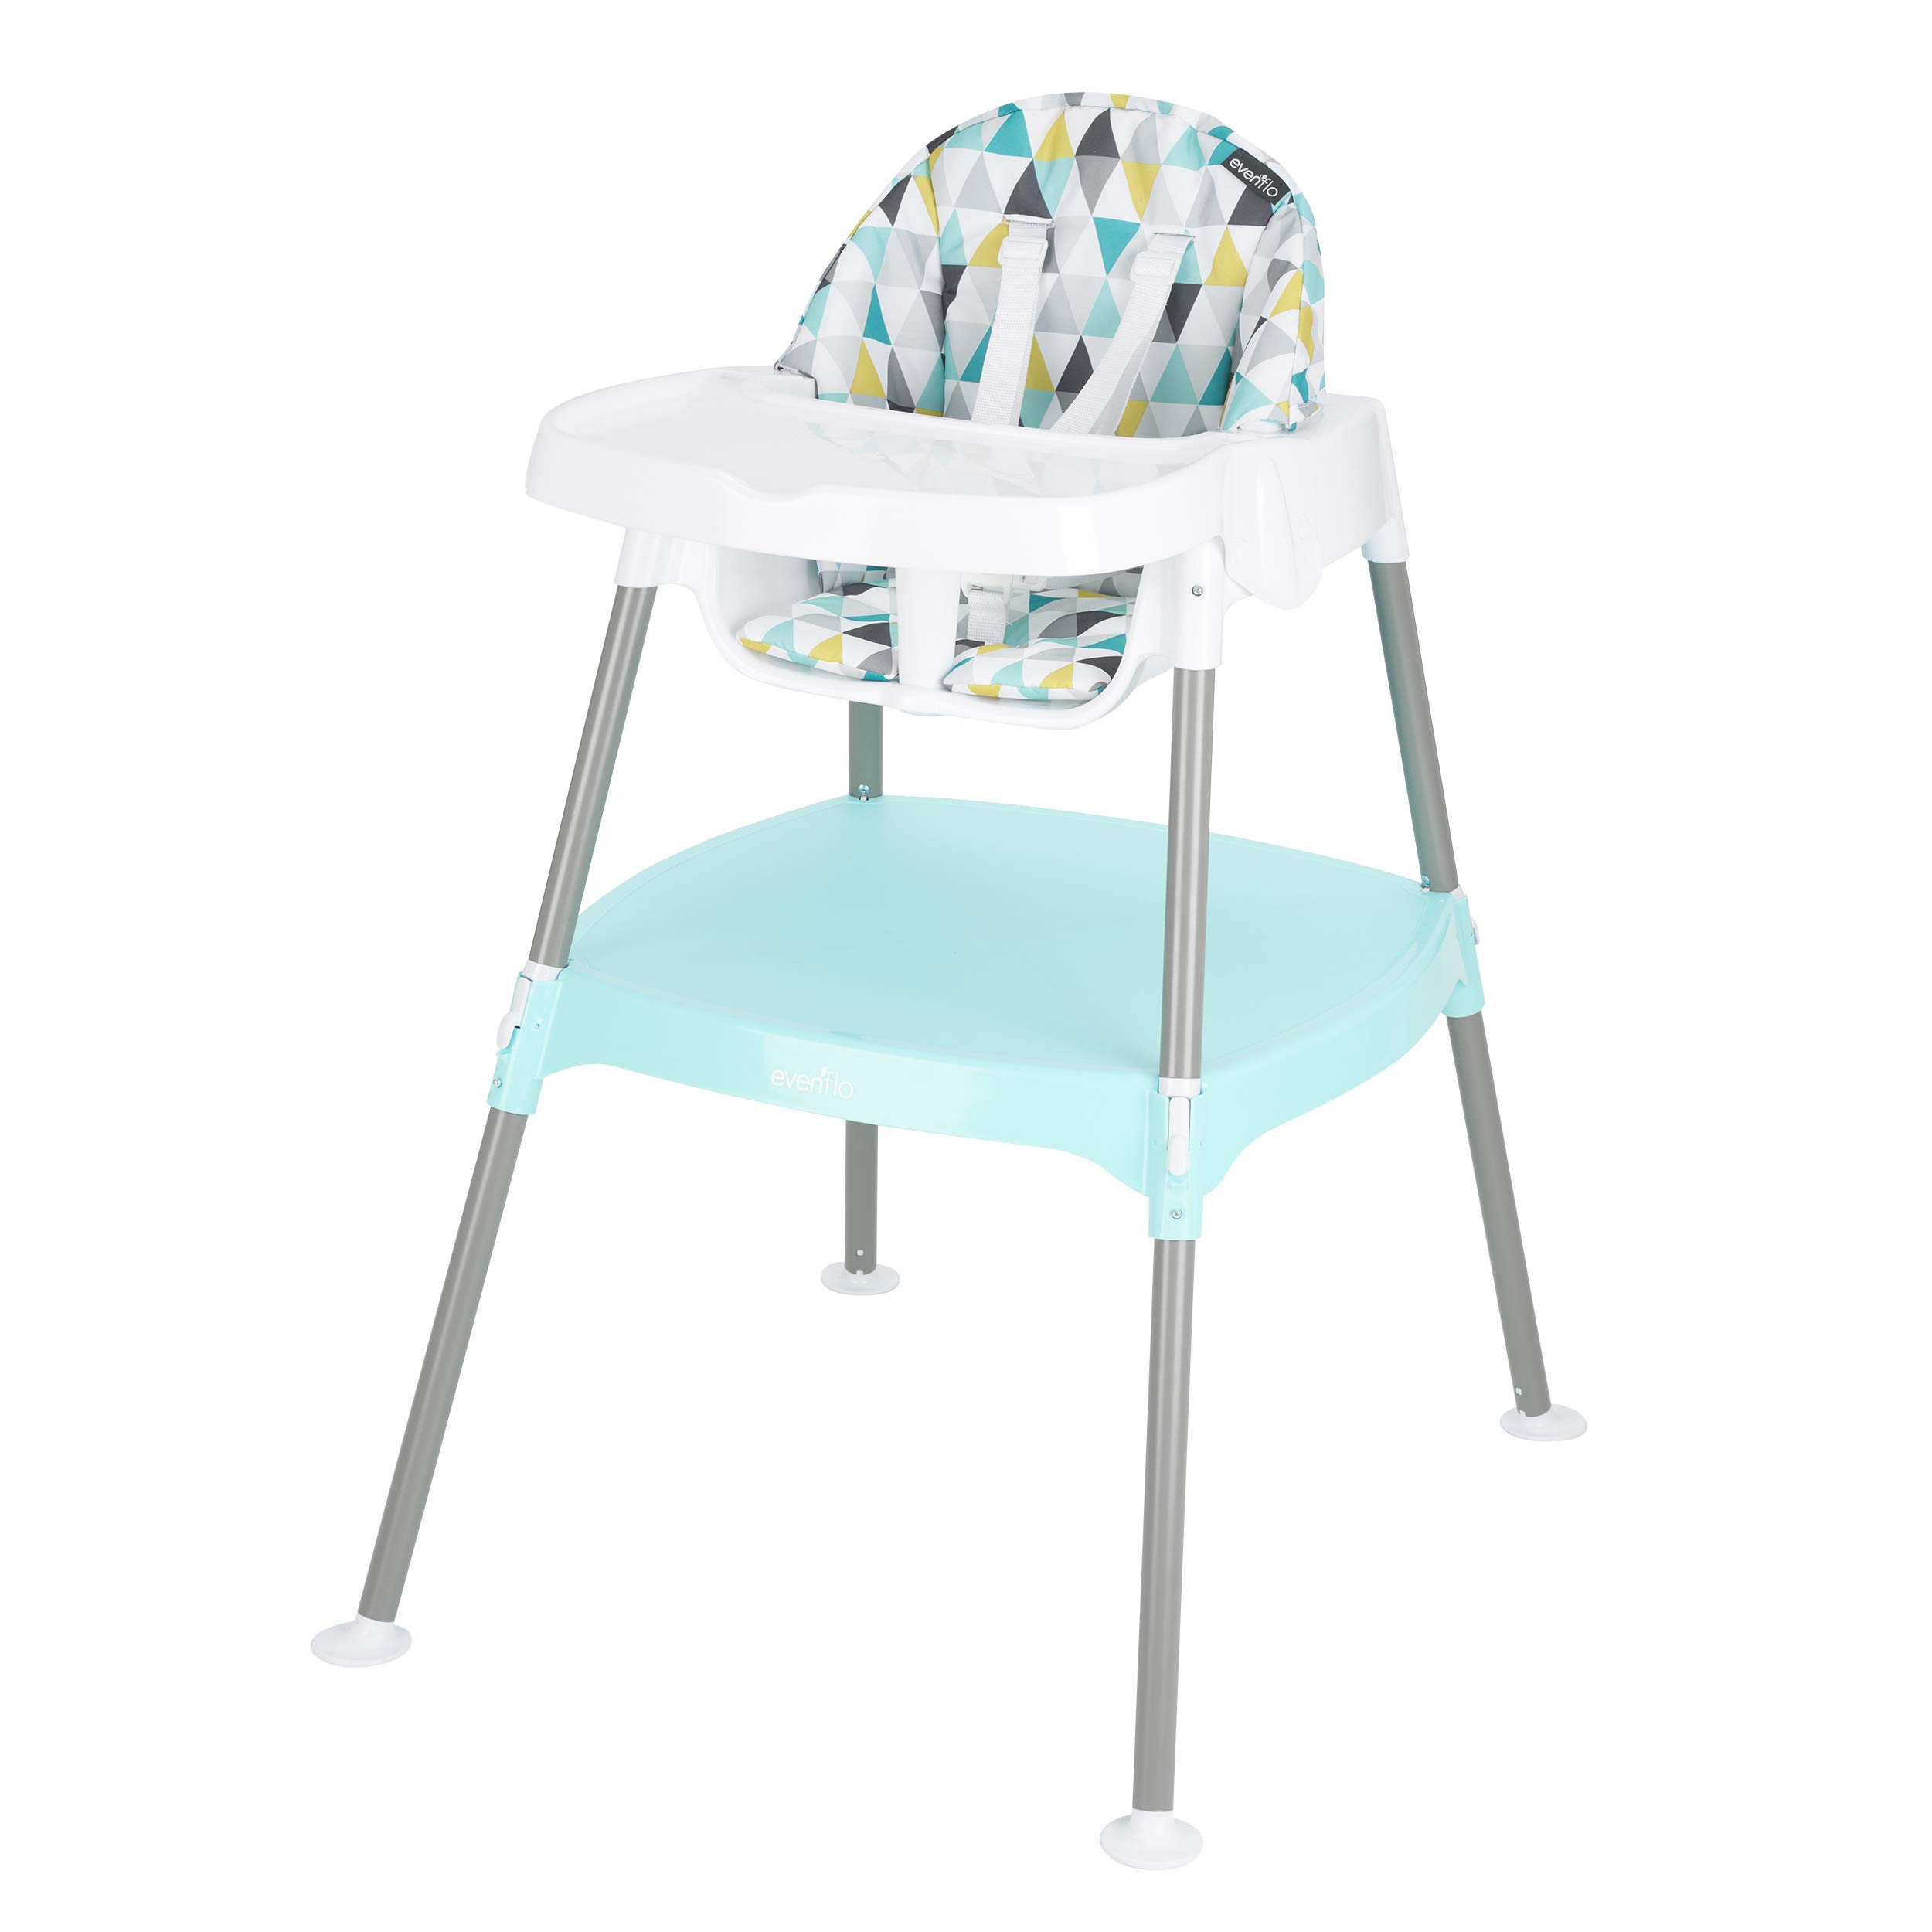 Evenflo 4-in-1 Eat & Grow Convertible High Chair (Prism)